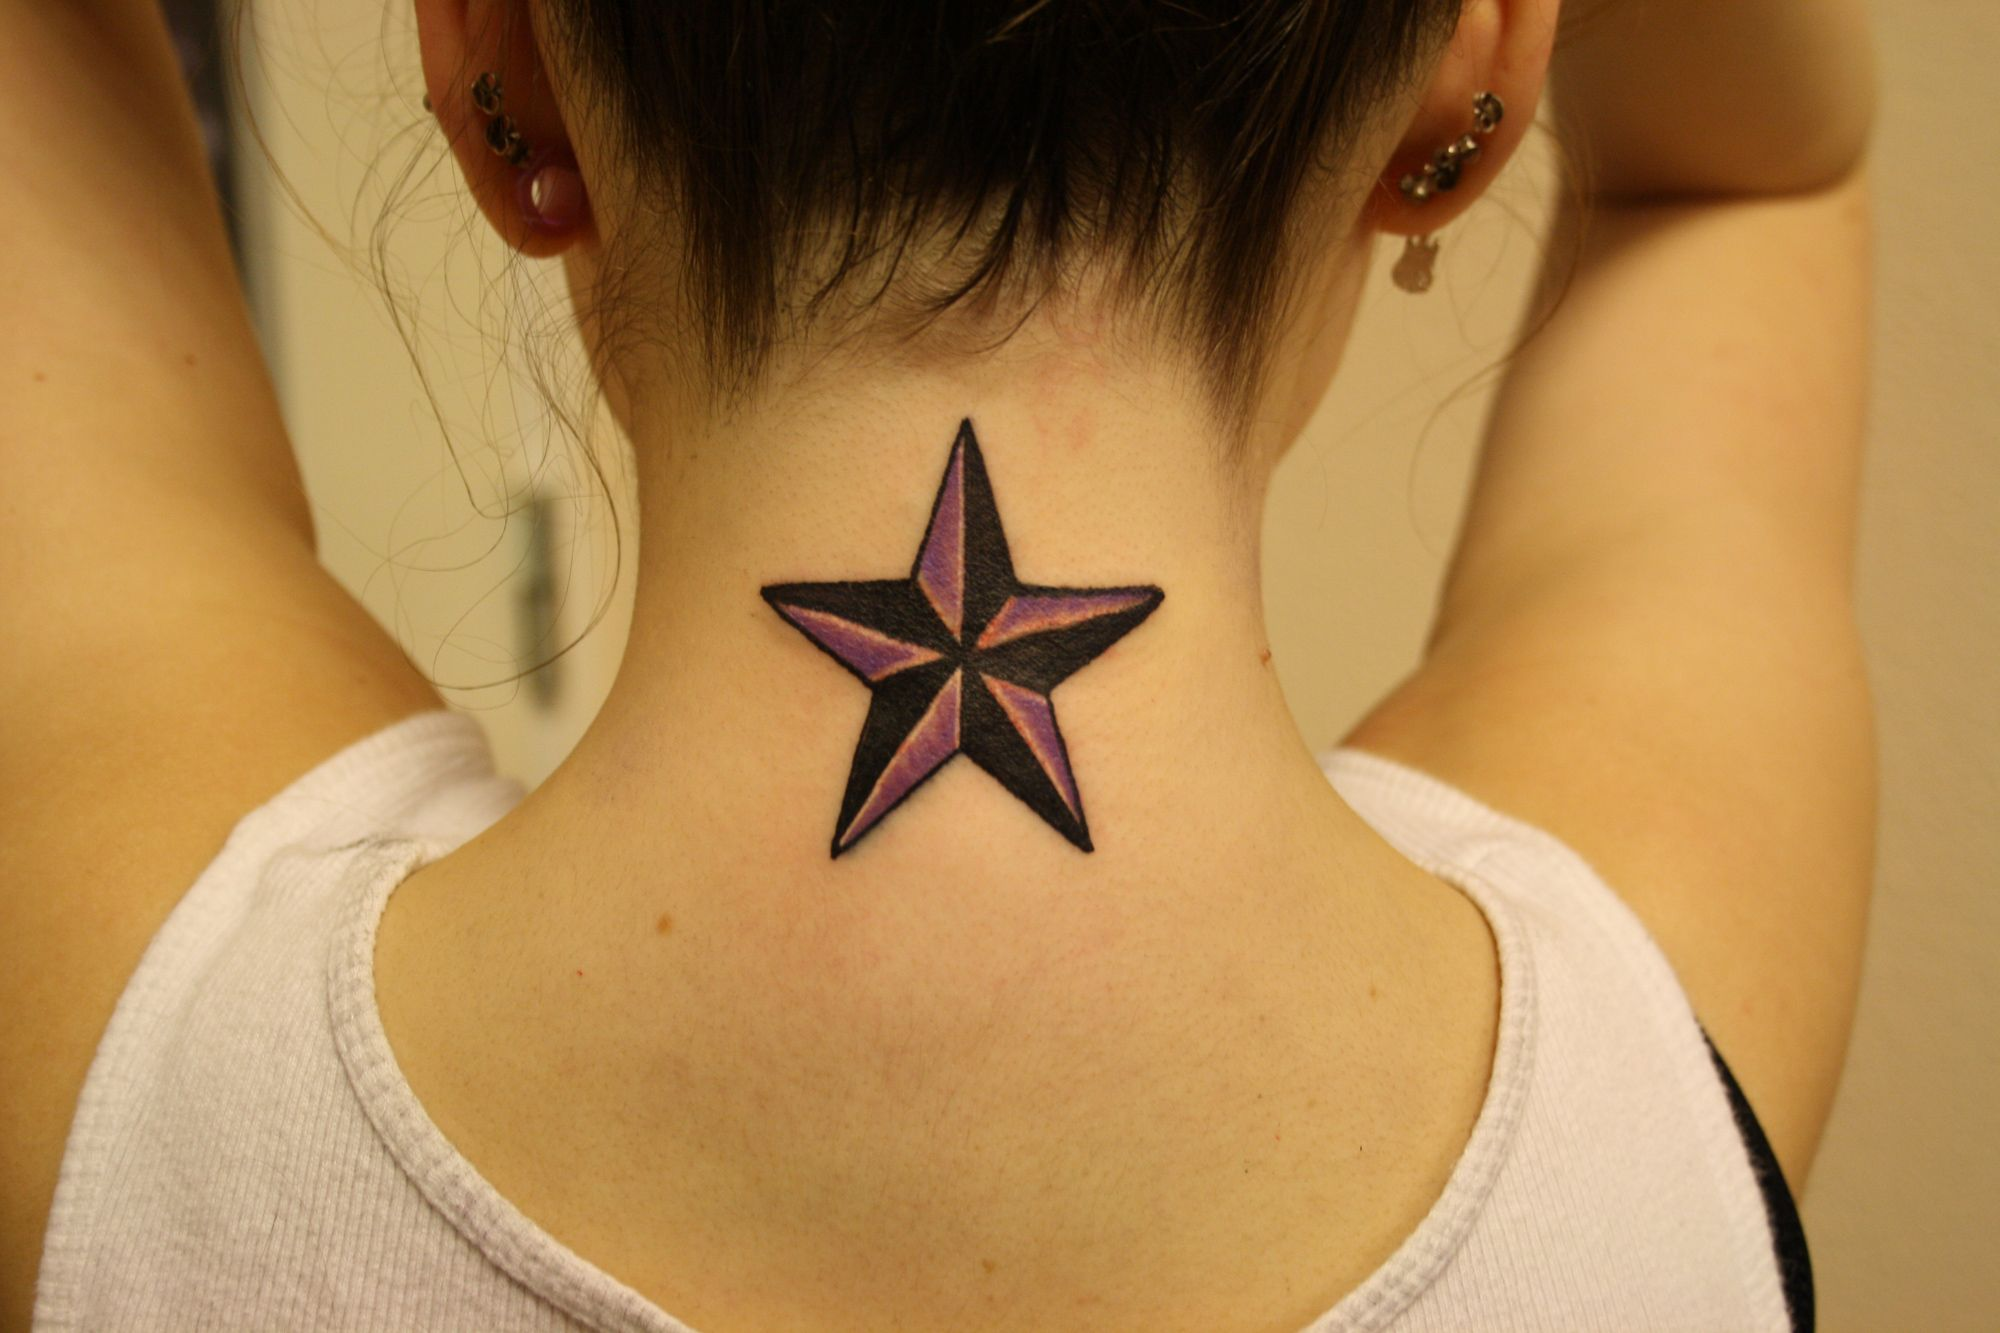 What Is The Meaning Of Star Tattoos Cemonggaul Neck Tattoos Women Star Tattoo Designs Nautical Star Tattoos